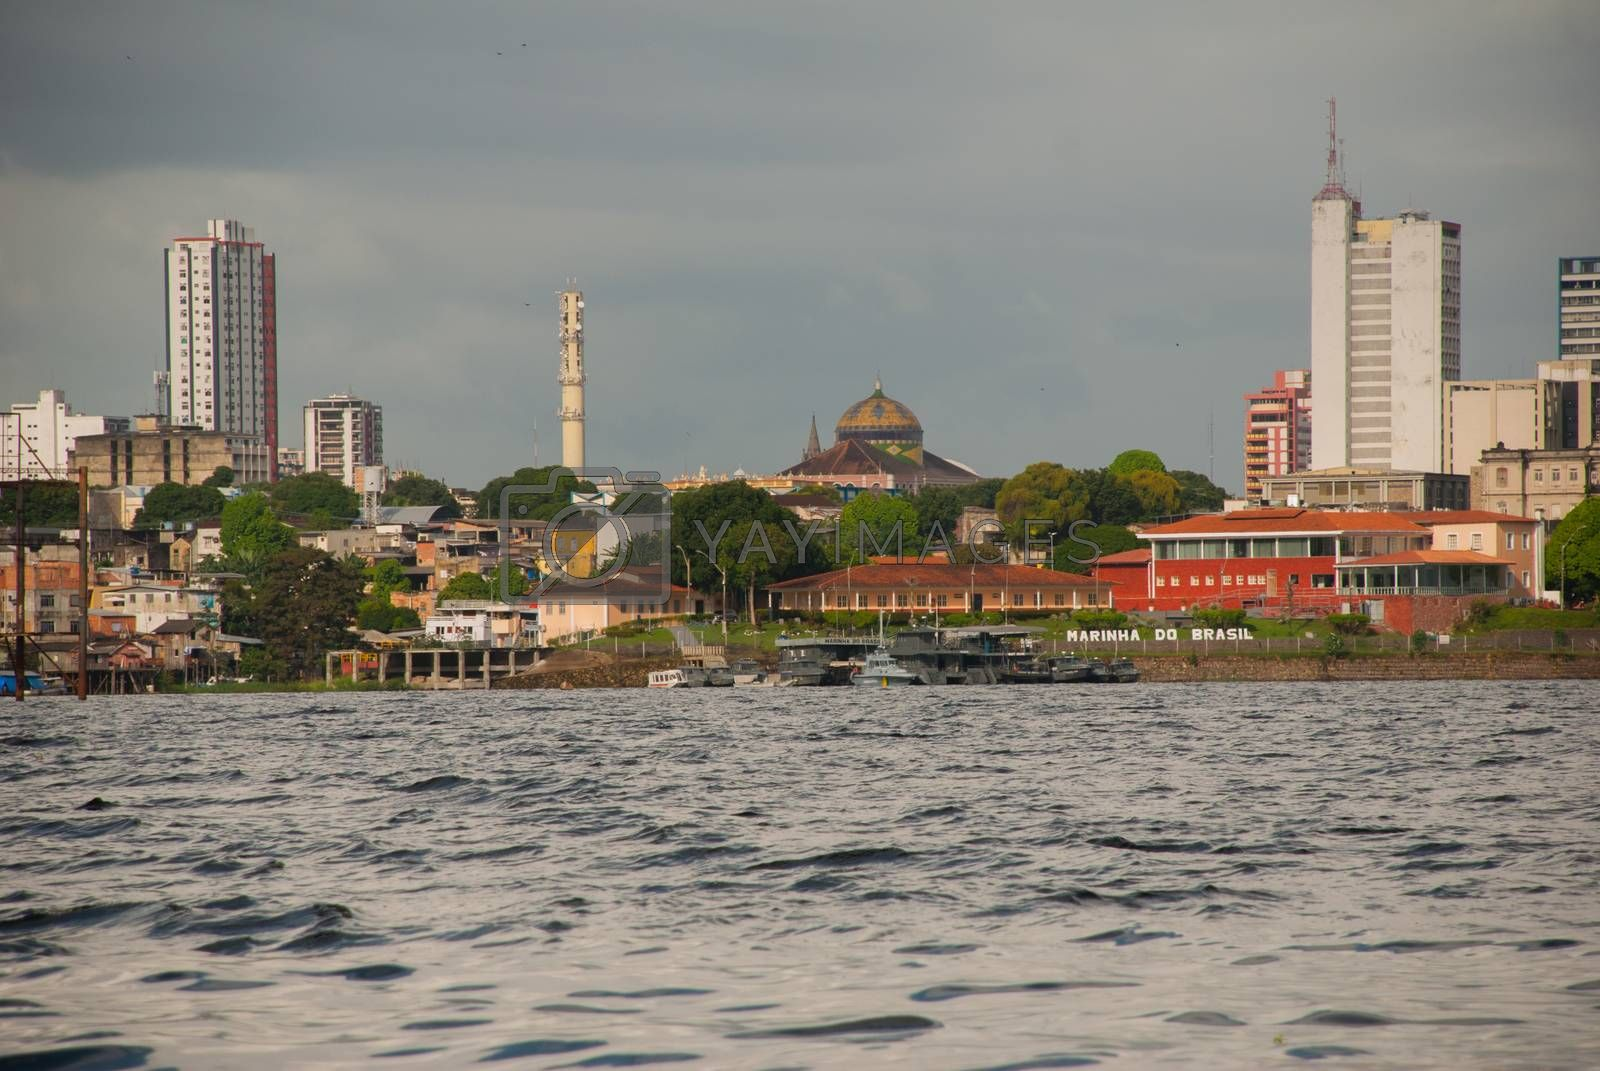 Manaus, Amazonas, Brazil, South America: Manaus Opera House. Popular tourist trip on the ship. View from the boat to the port city of Manaus.